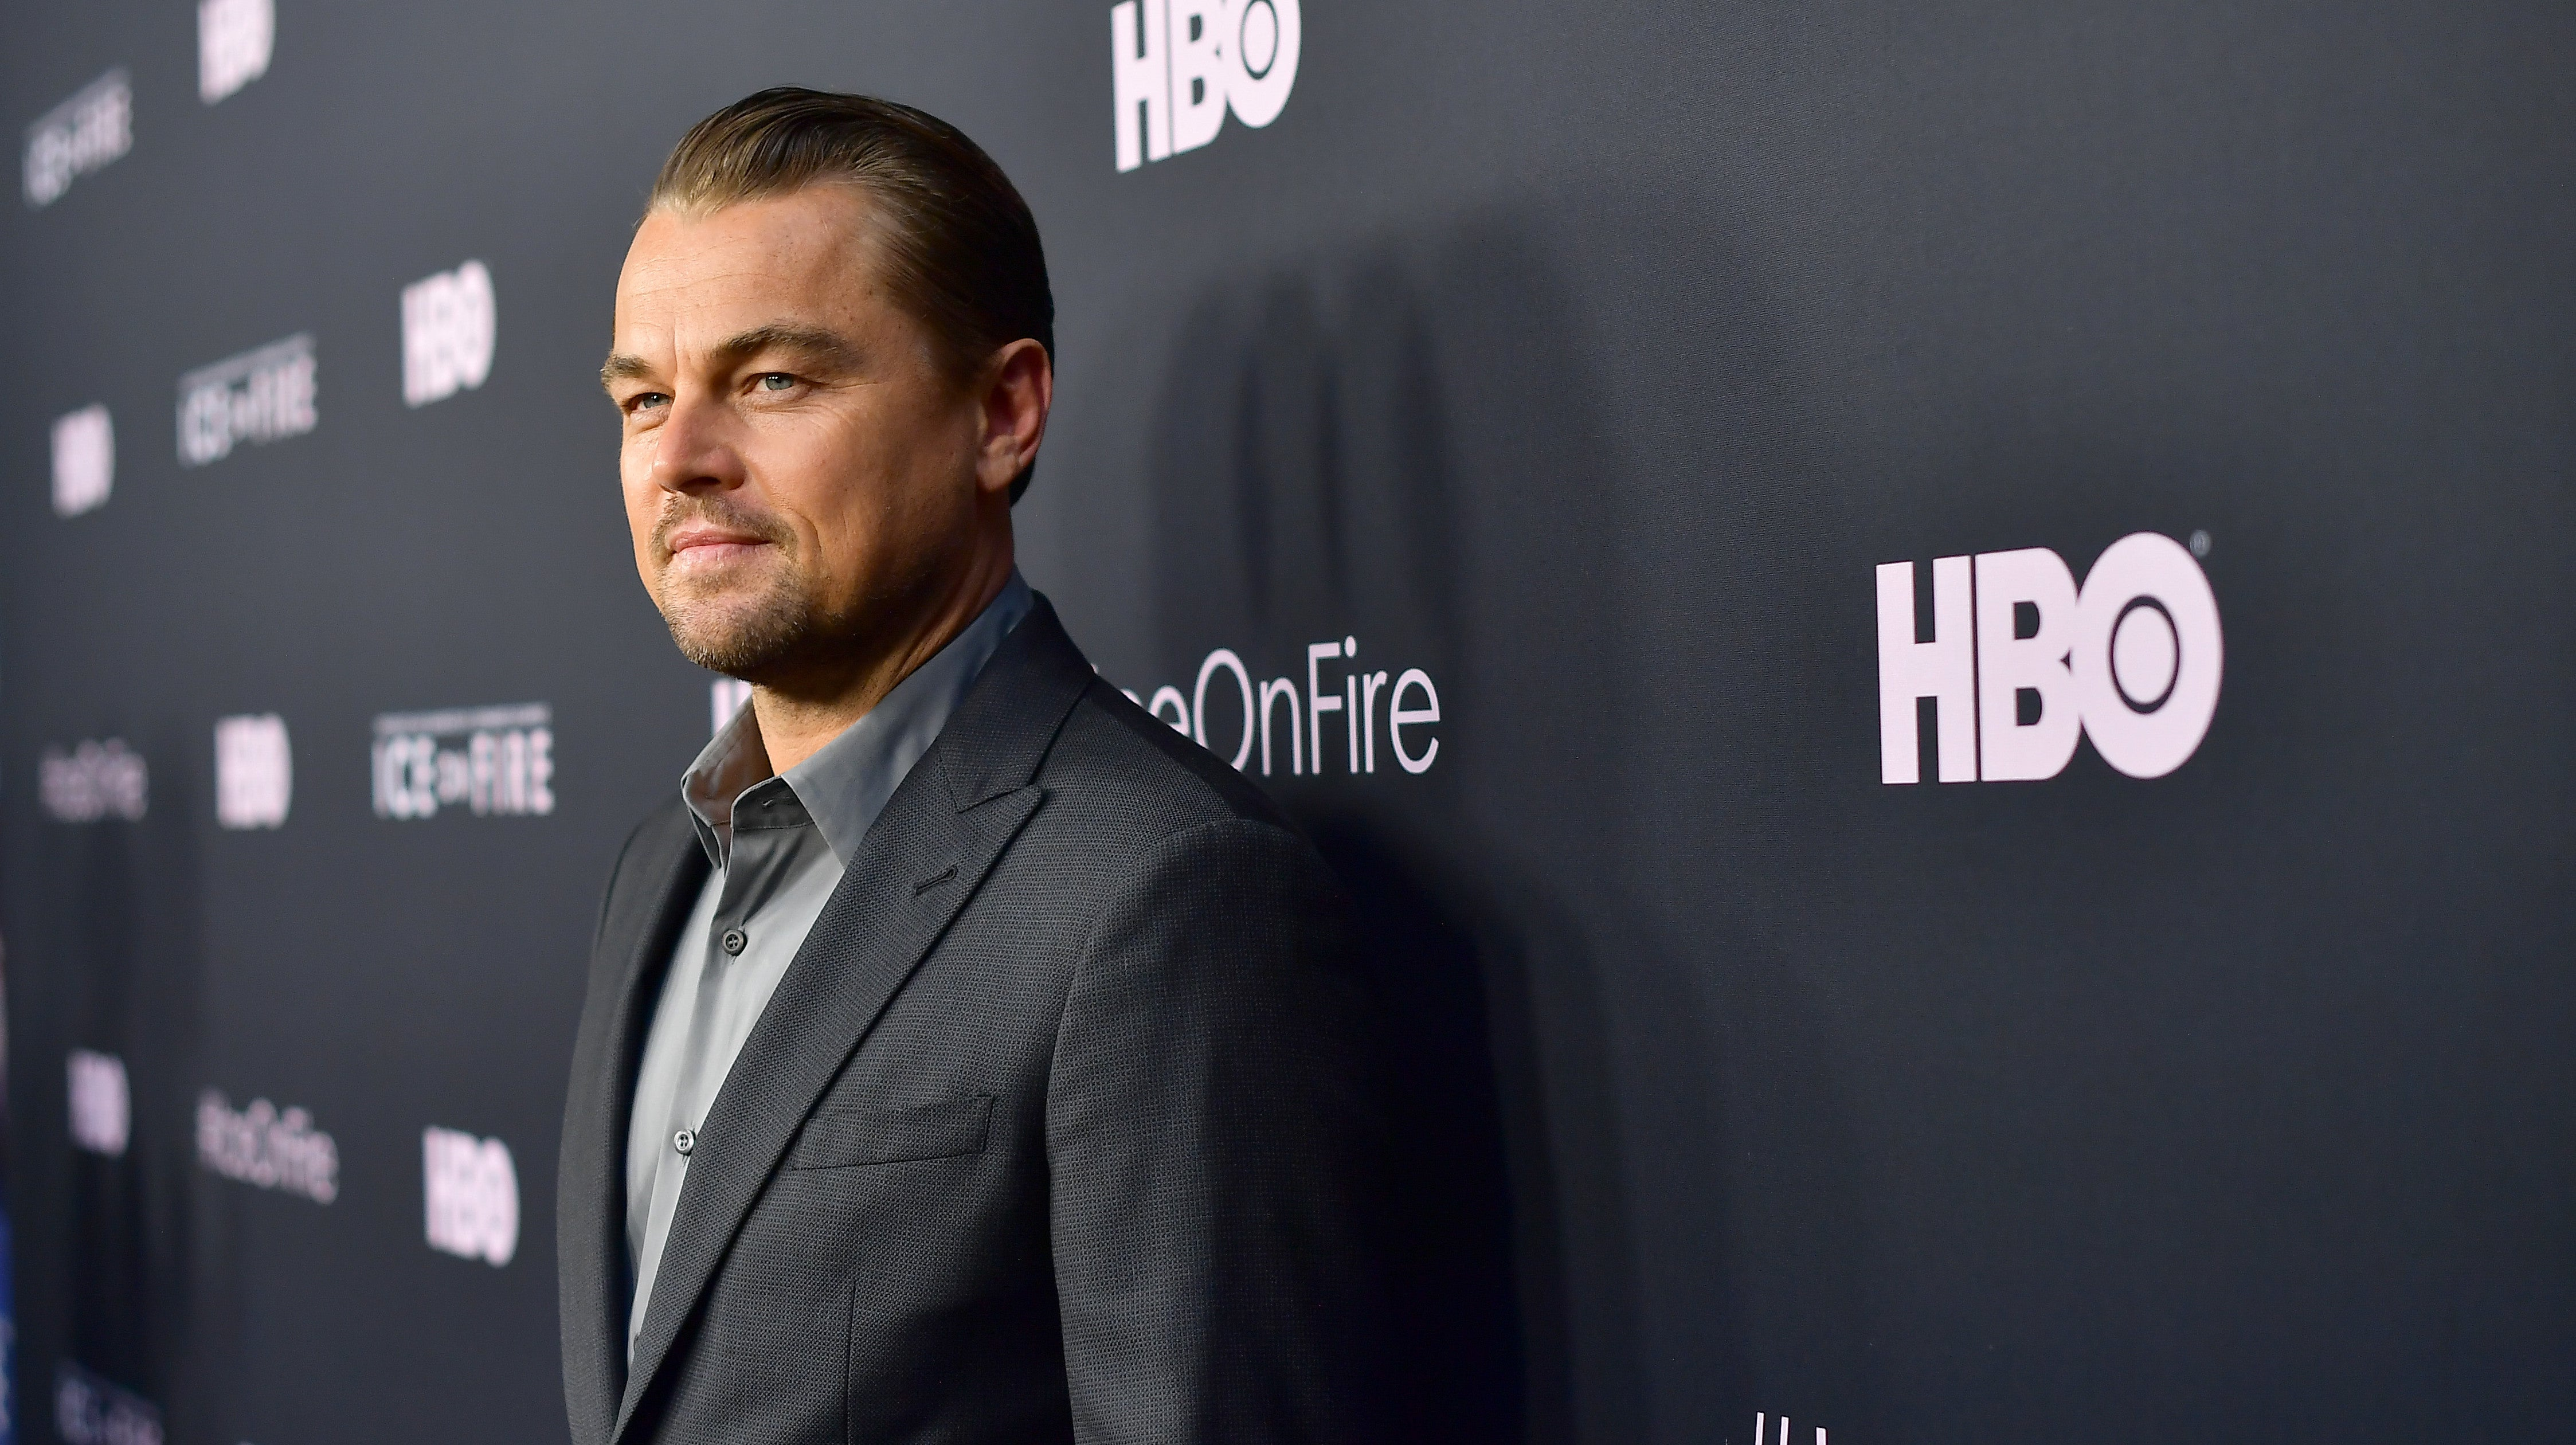 Leo's $5 Million Donation Is Great, But It's Not Enough To Save The Amazon